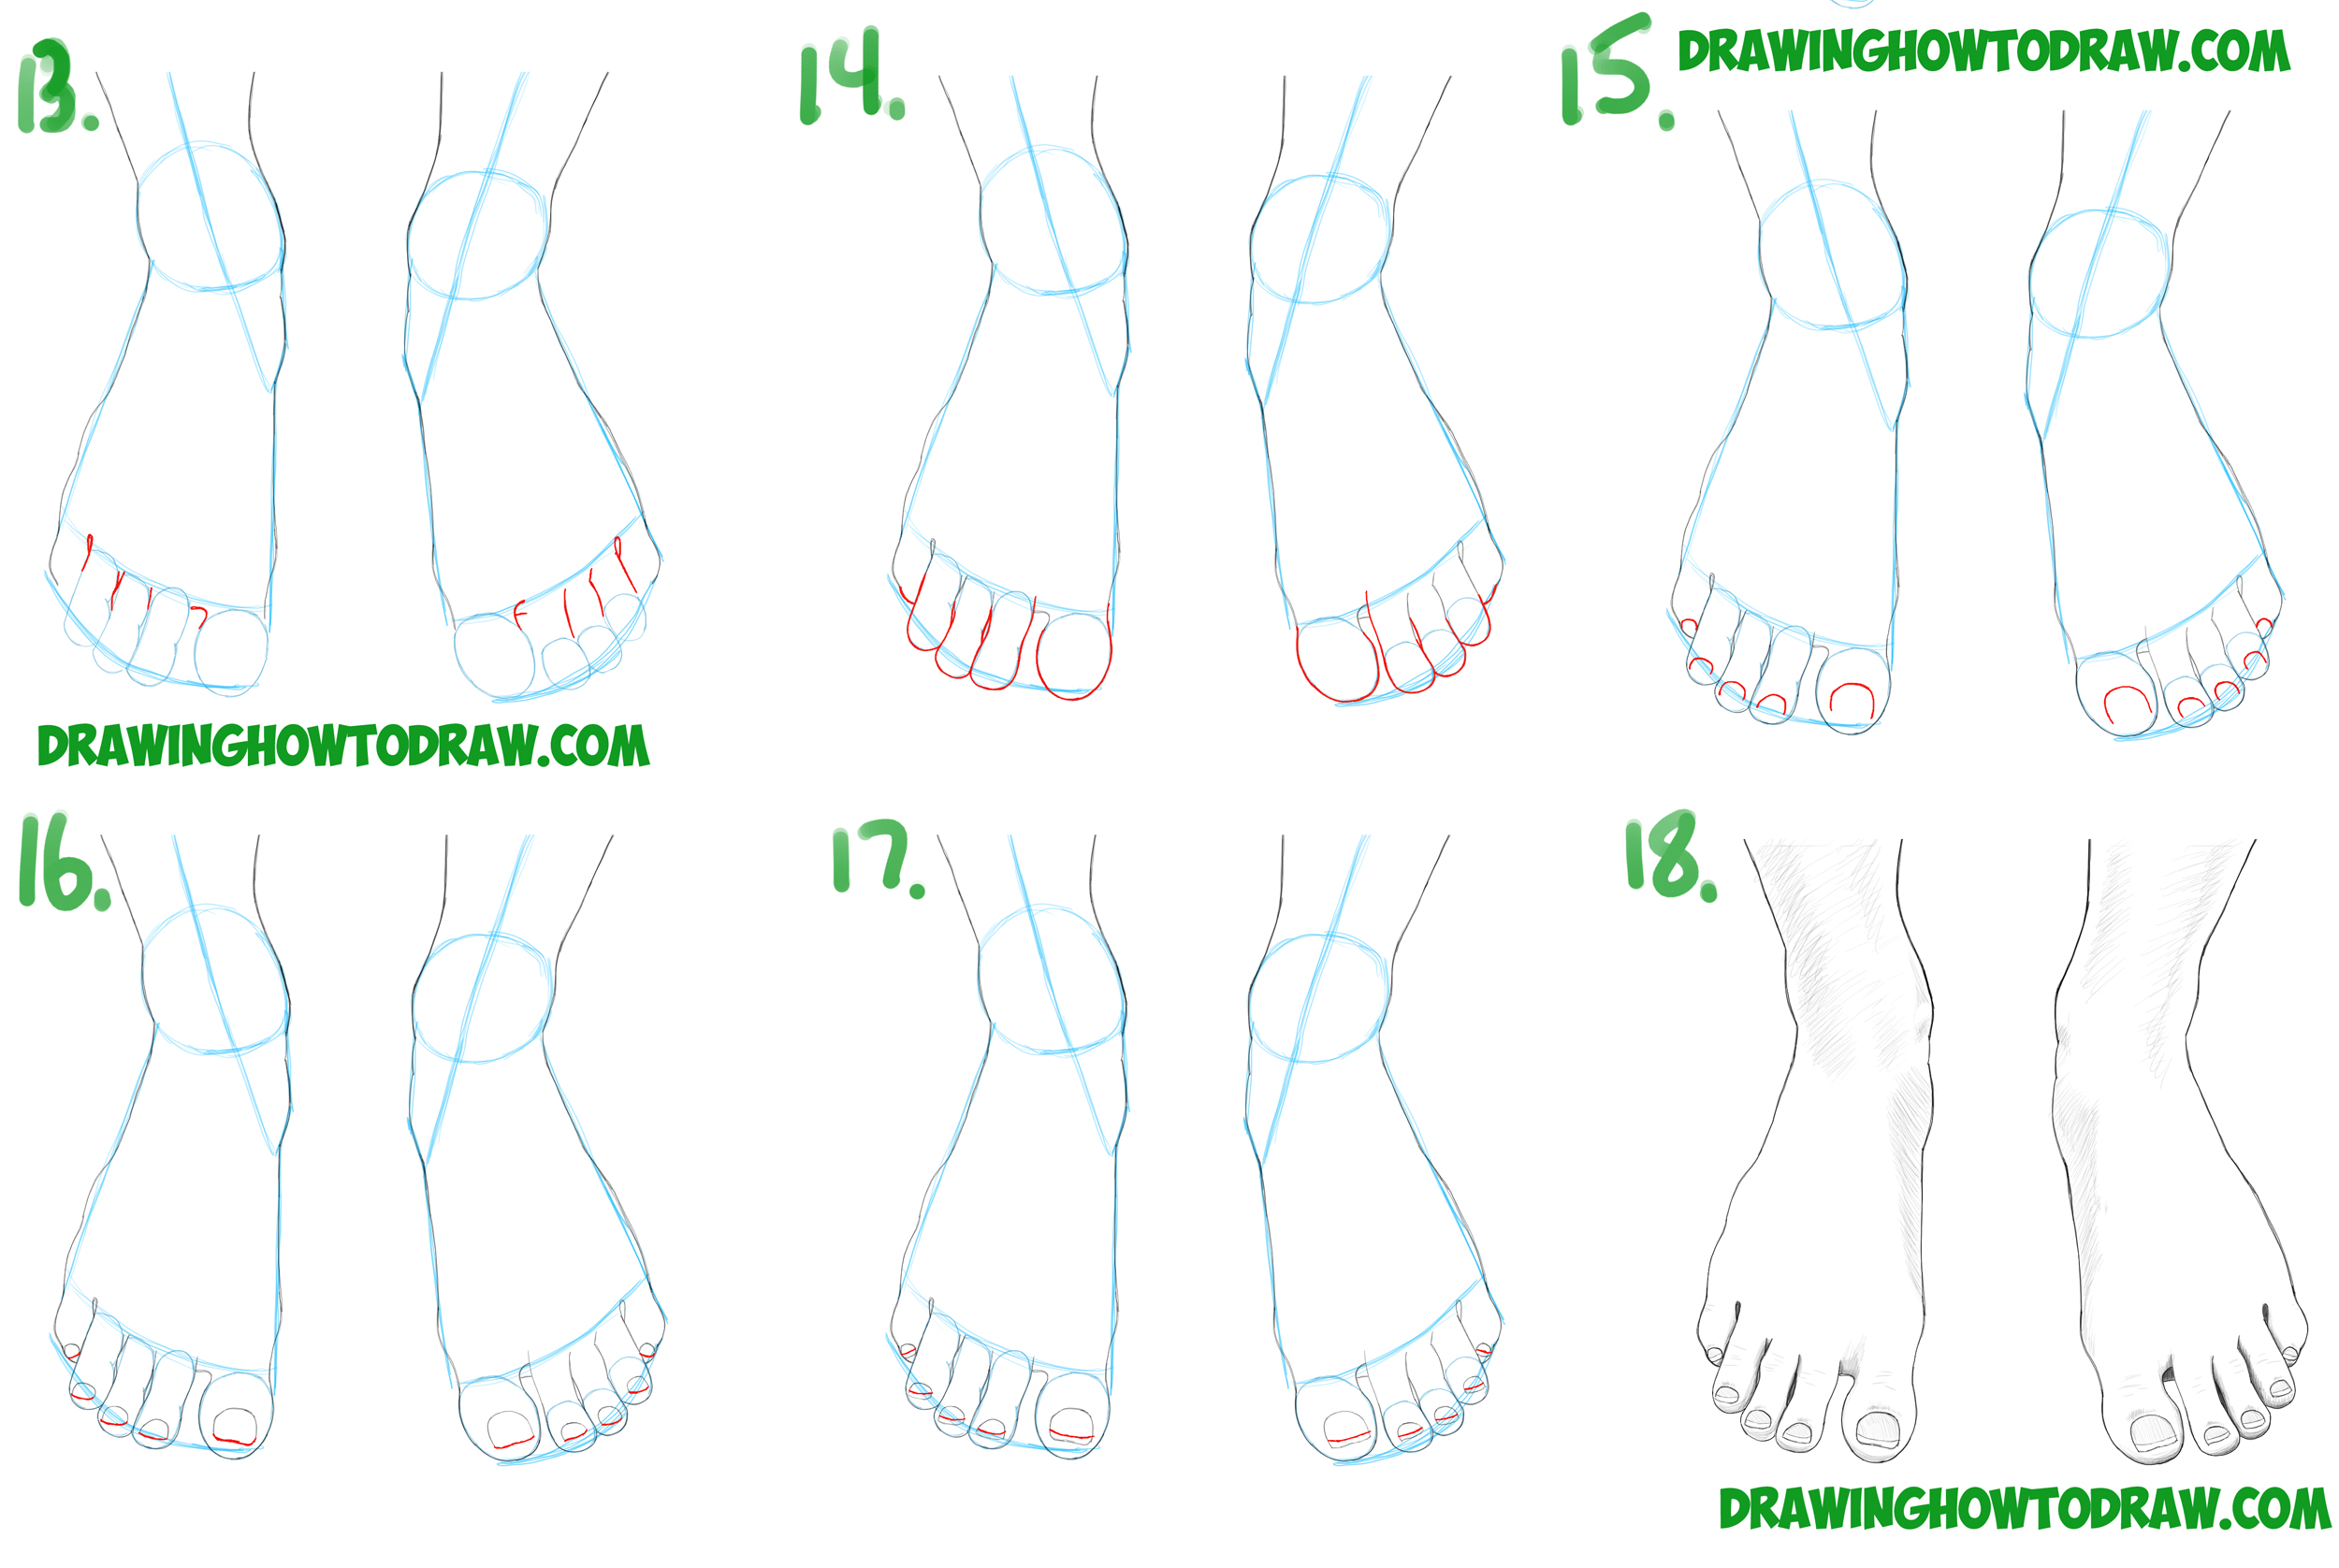 Learn How to Draw Feet / the Human Foot with Simple Steps Drawing Lesson for Beginners